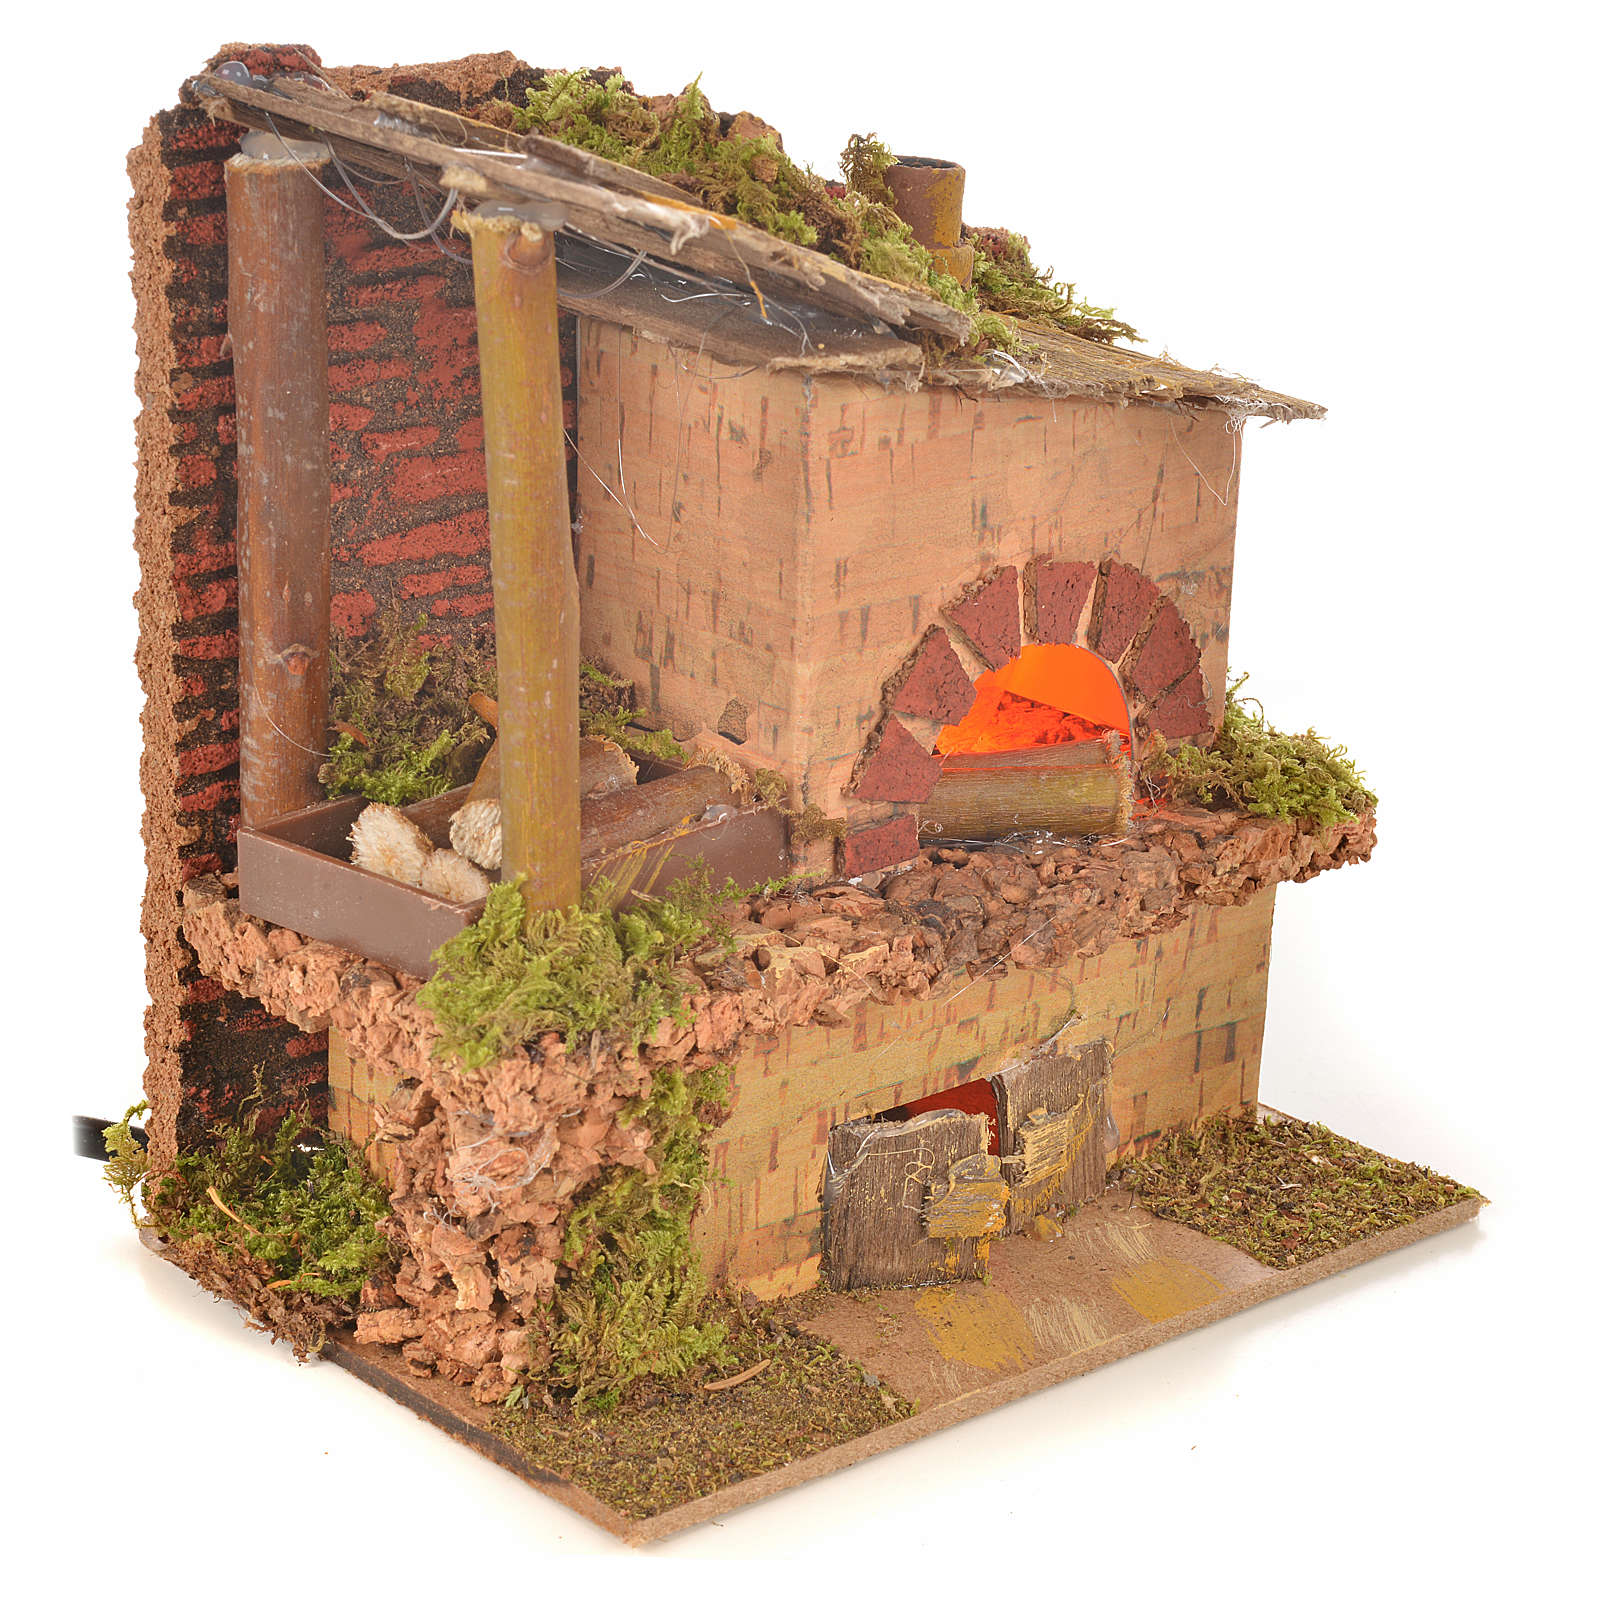 Nativity oven with flame lamp, 15x10x15cm 4